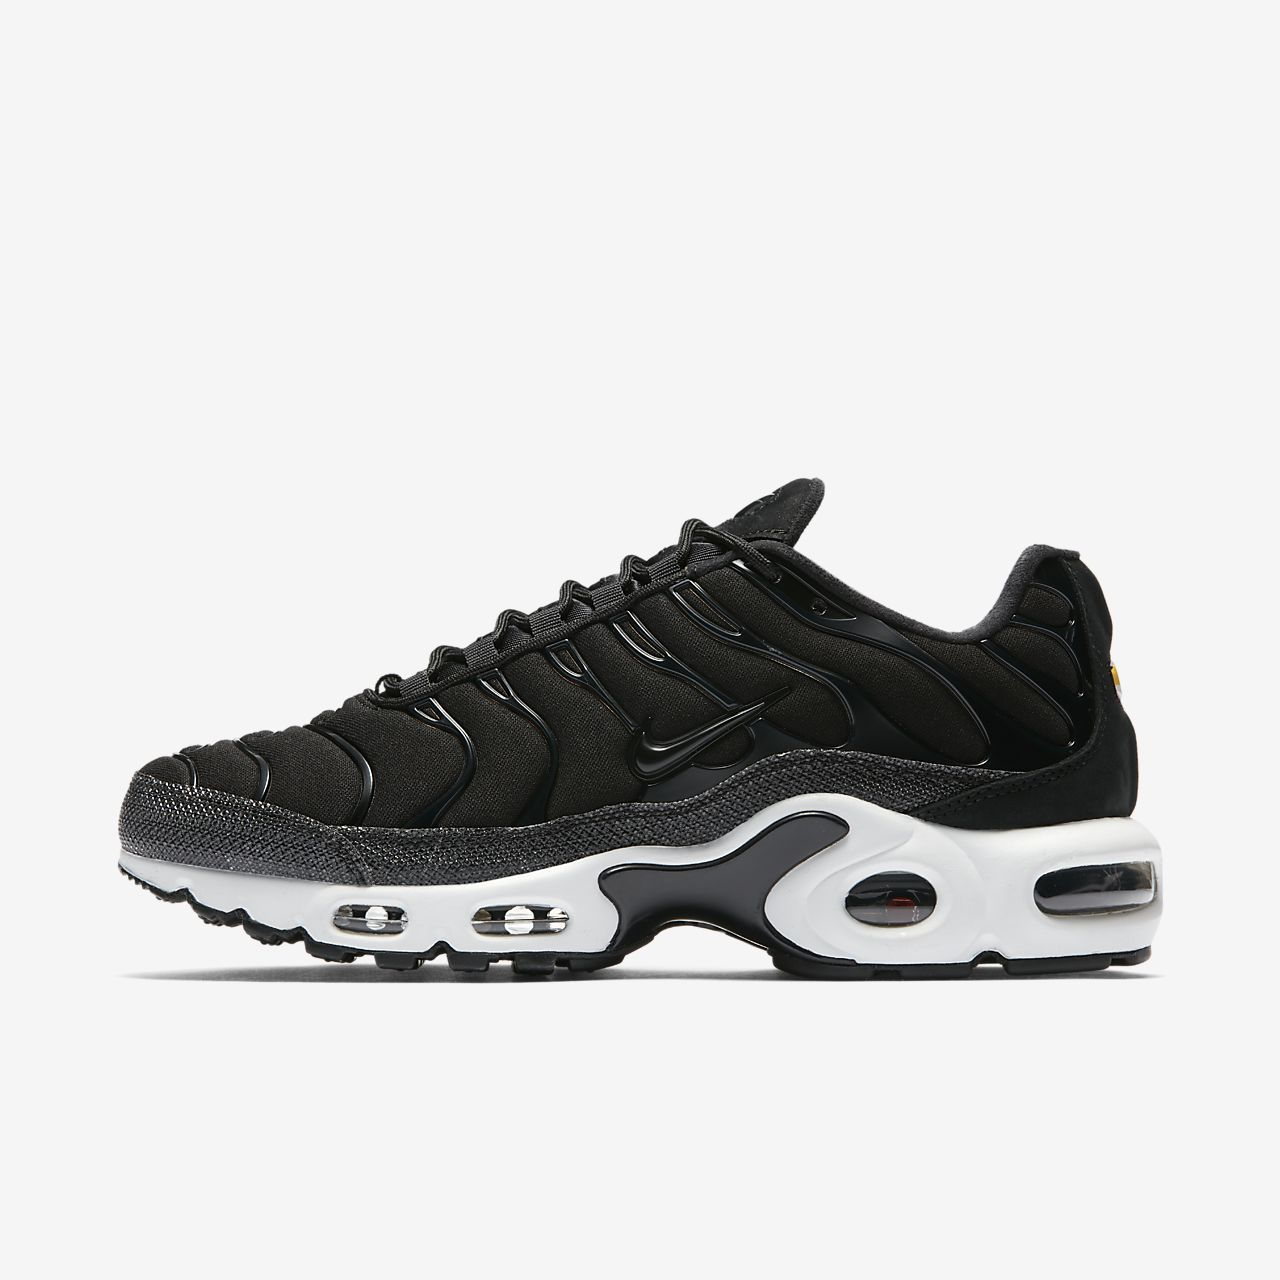 nike air max plus premium black